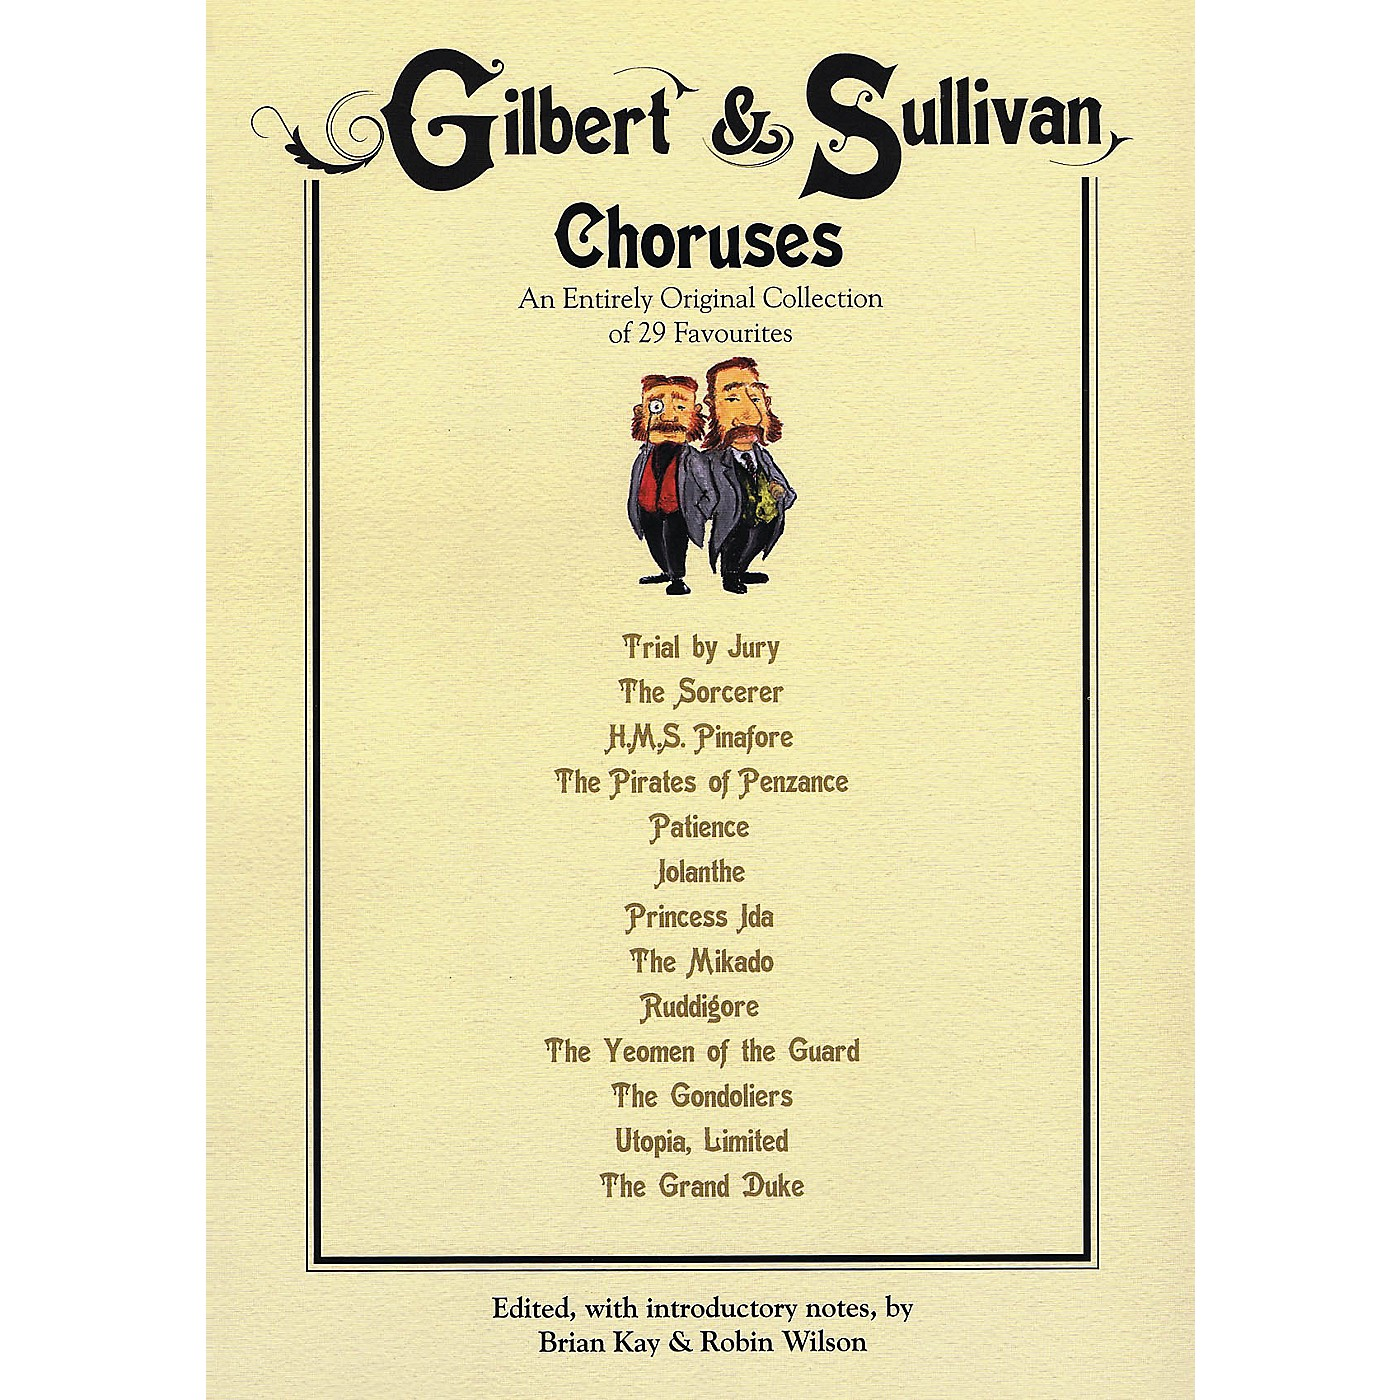 Novello Gilbert & Sullivan Choruses (An Entirely Original Collection of 29 Favorites) Composed by W.S. Gilbert thumbnail